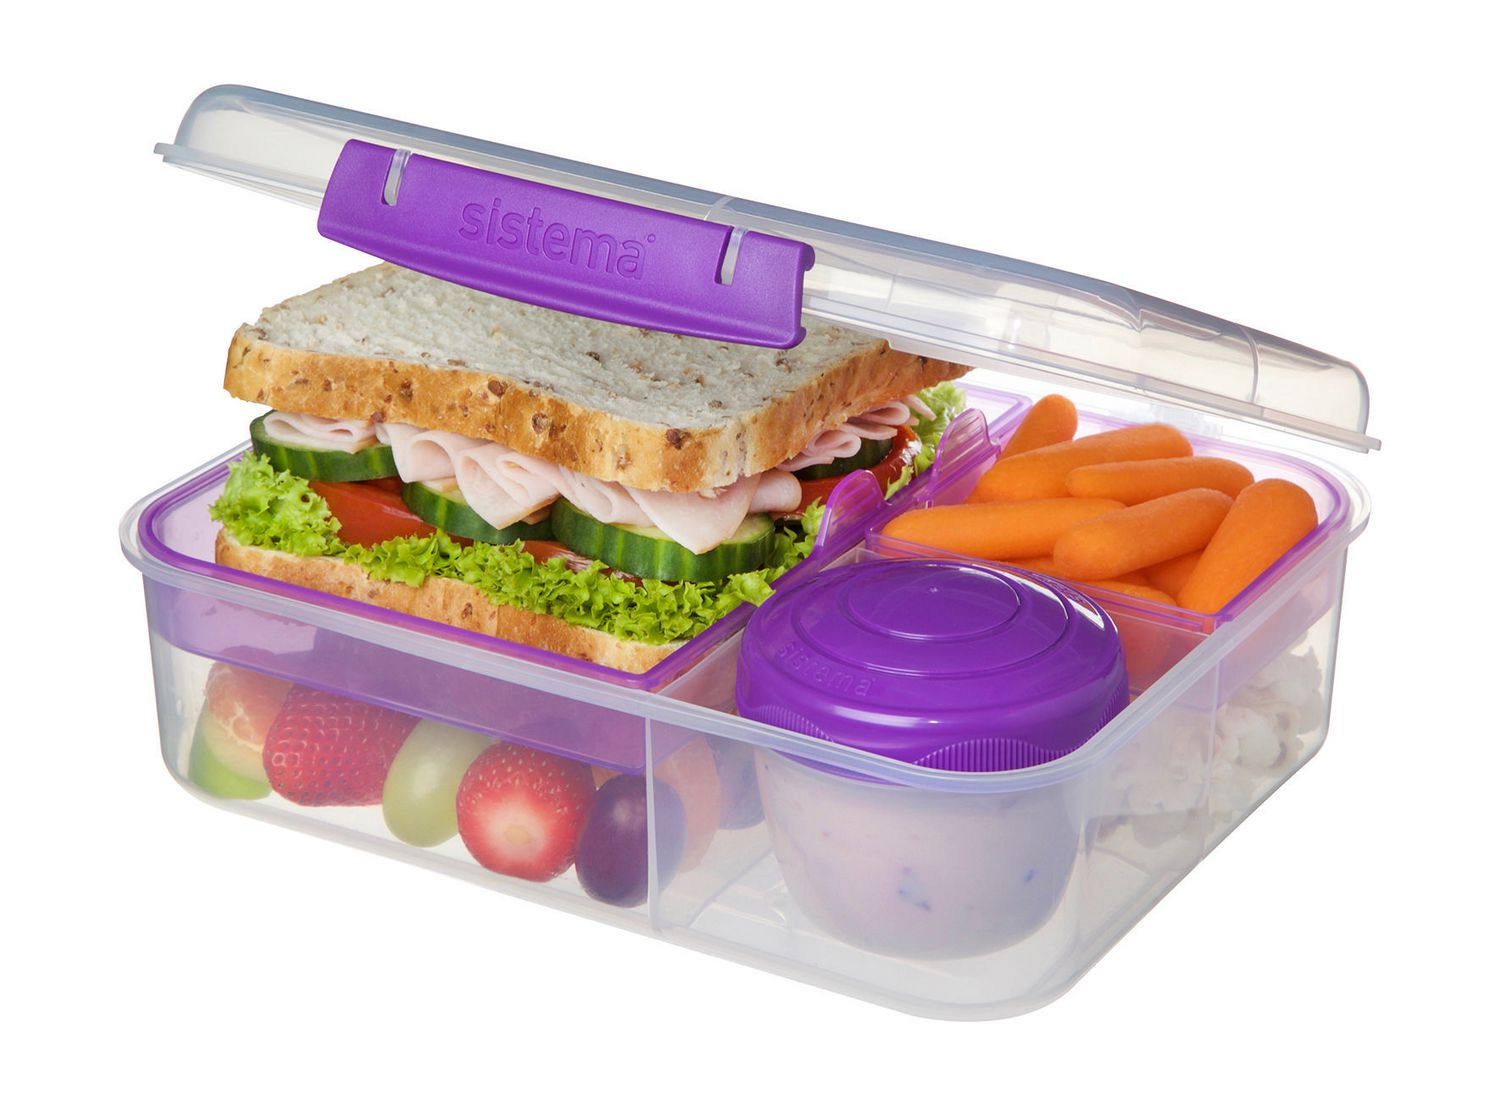 77f5d2a8e833 Sistema to Go Bento Lunch Box Food Storage Container